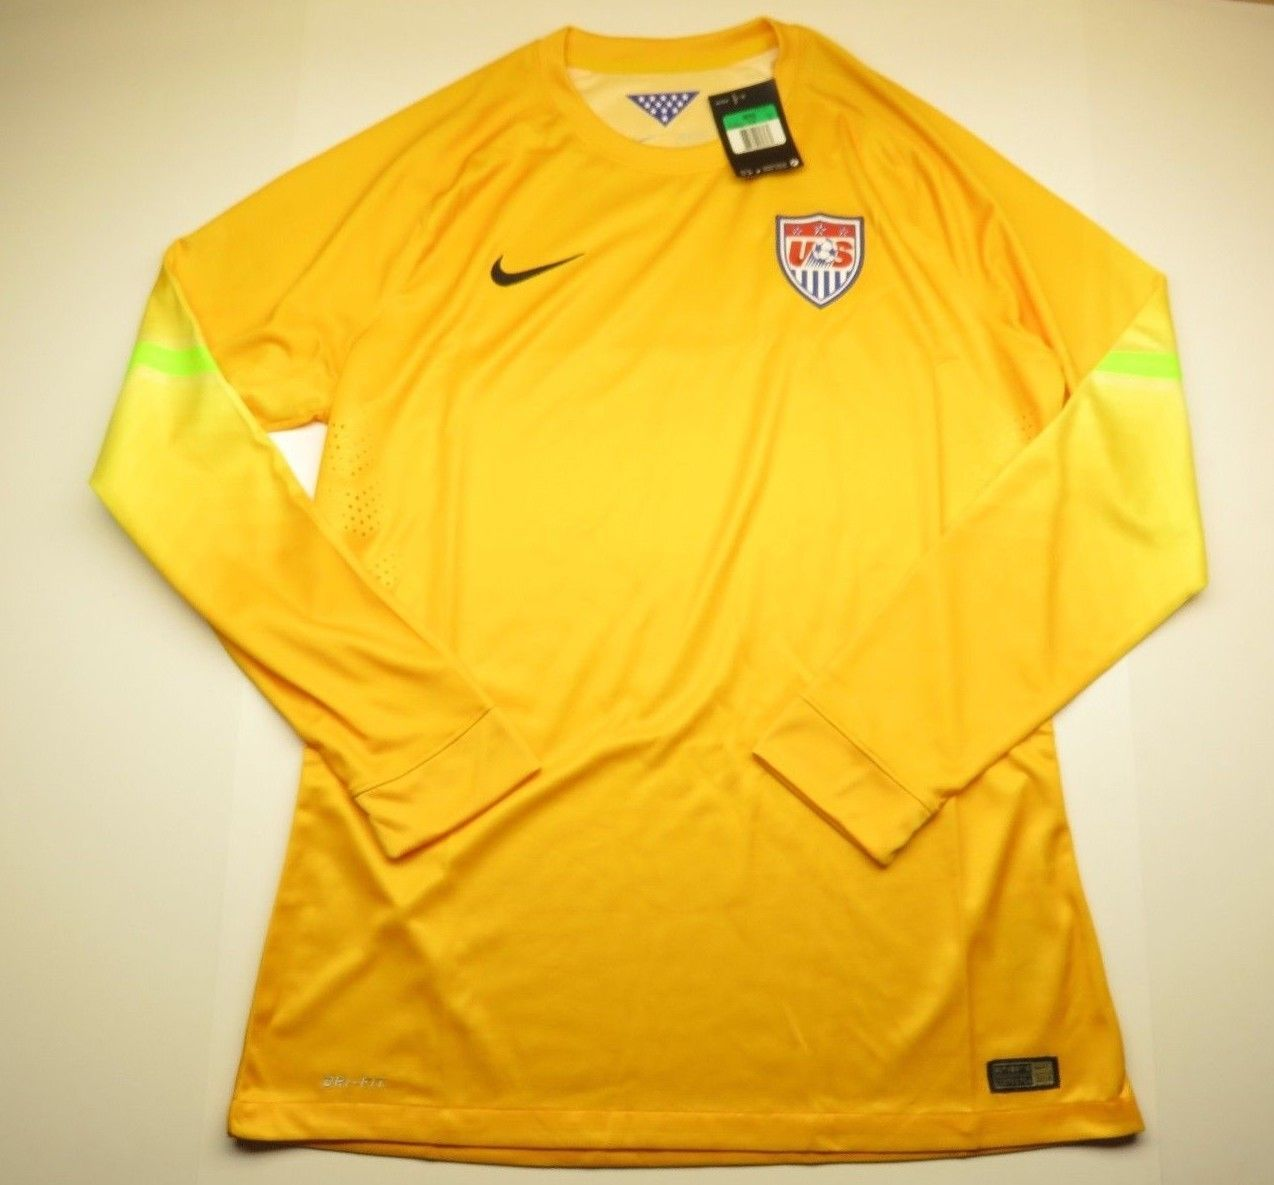 0fb80d0c0 NEW Yellow NIKE US Soccer Jersey Long Sleeve and 50 similar items